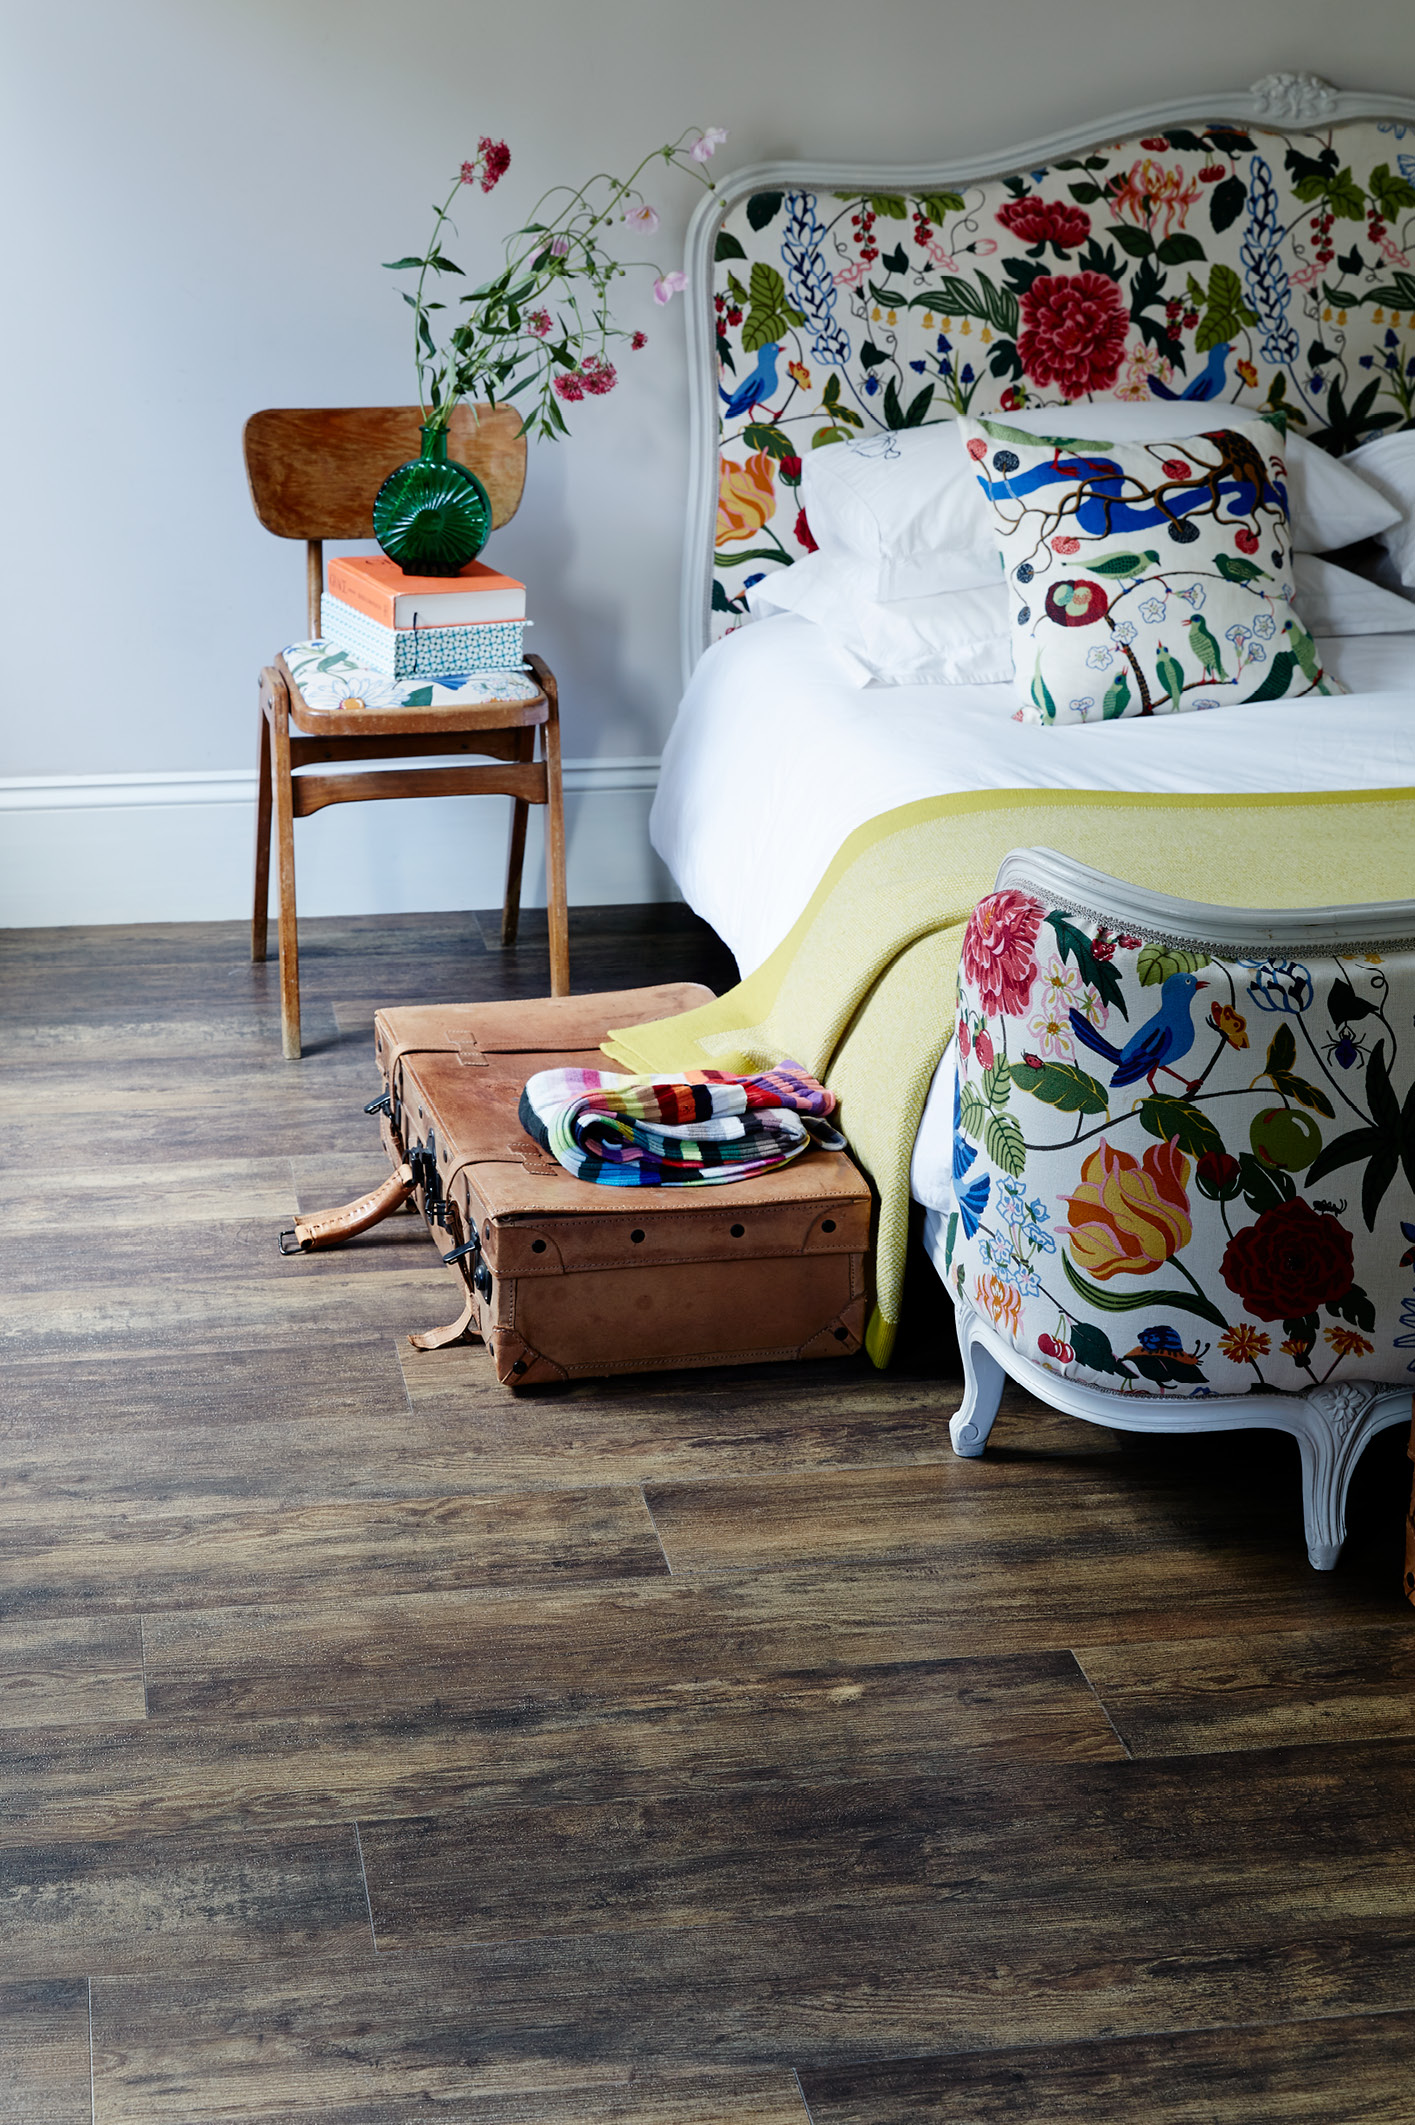 The Stripwood Laying Pattern Is One Of Simpler Patterns Our Designs Which Allows Floor To Become A Beautiful Backdrop For Range